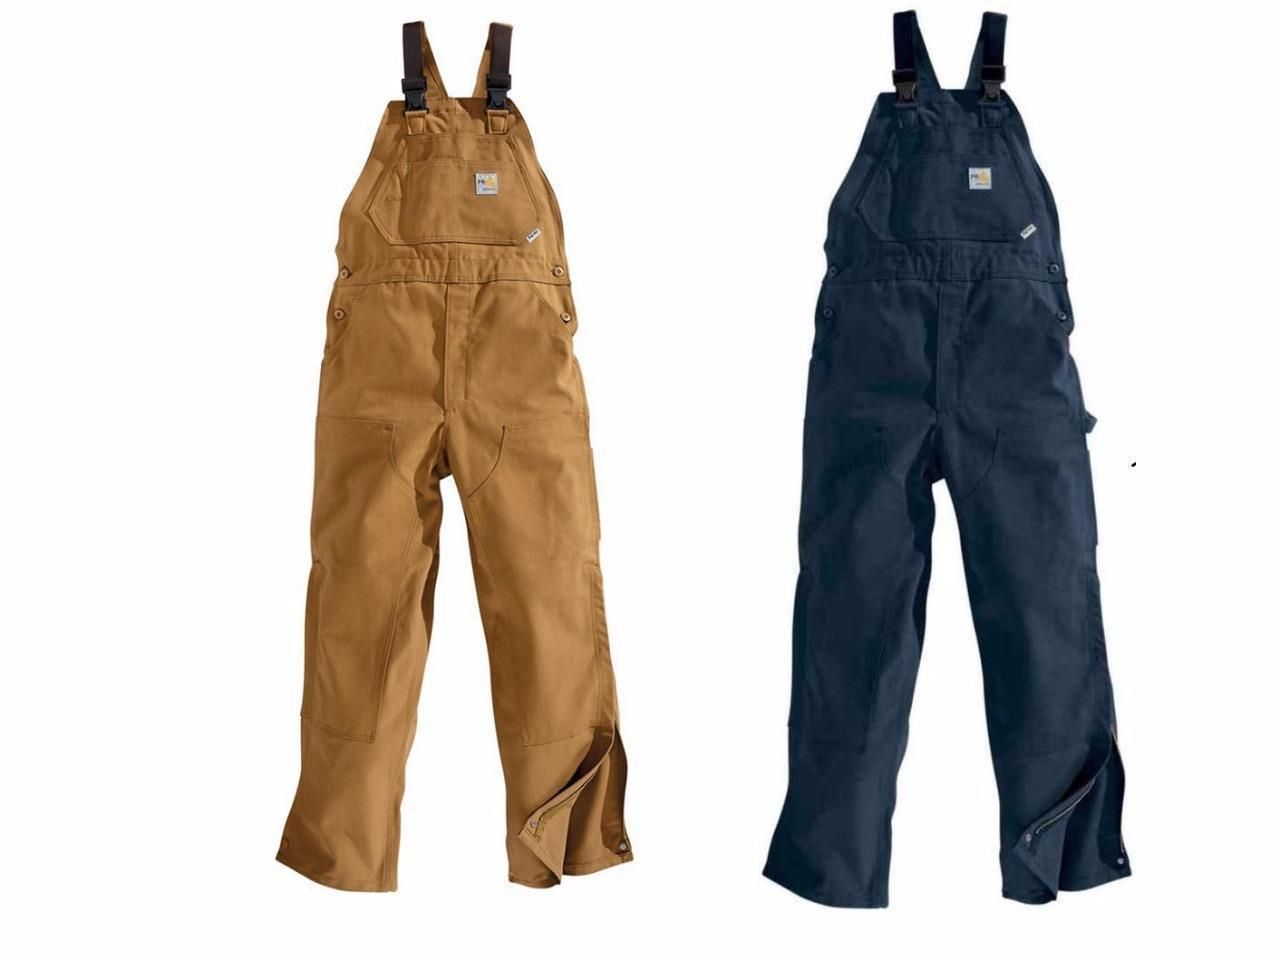 73c536d1e0ef Coveralls and Jumpsuits 178962  New Carhartt Flame Resistant Safety Work Bib  Overalls Unlined Canvas M L Xl 2Xl -  BUY IT NOW ONLY   89.1 on  eBay ...